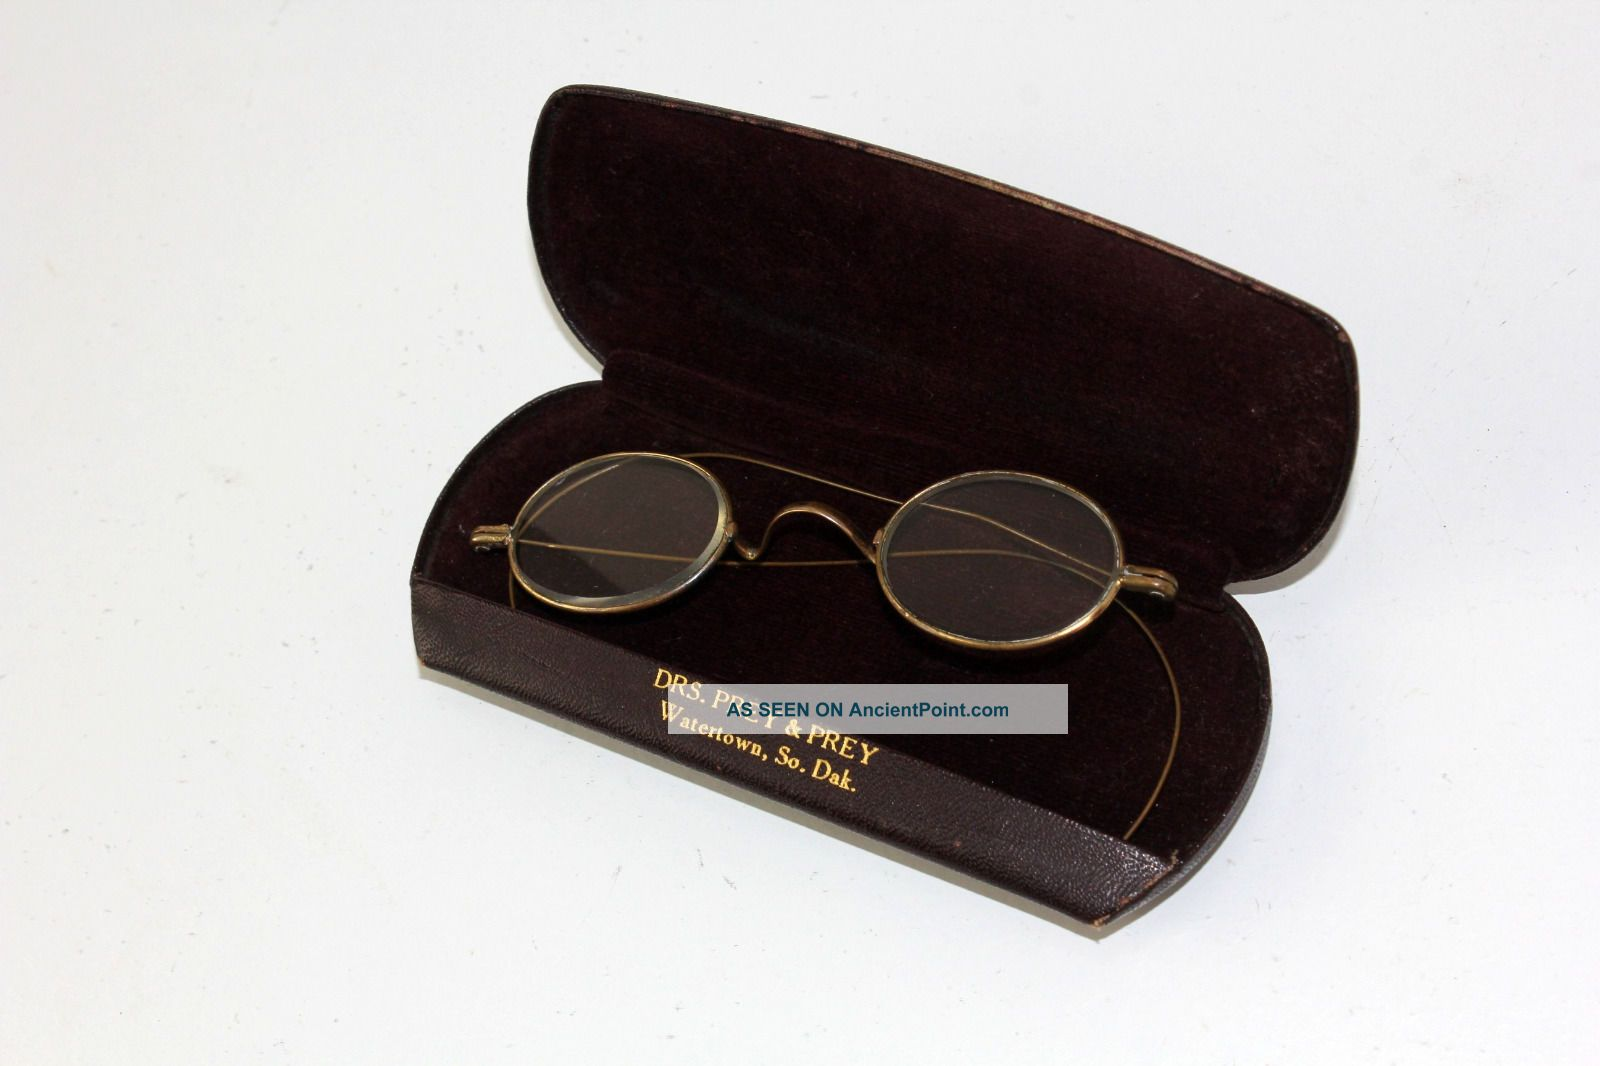 Antique Oval Eyeglasses Spectacles Brass Flextemples Watertown Sd Prey&prey Case Optical photo